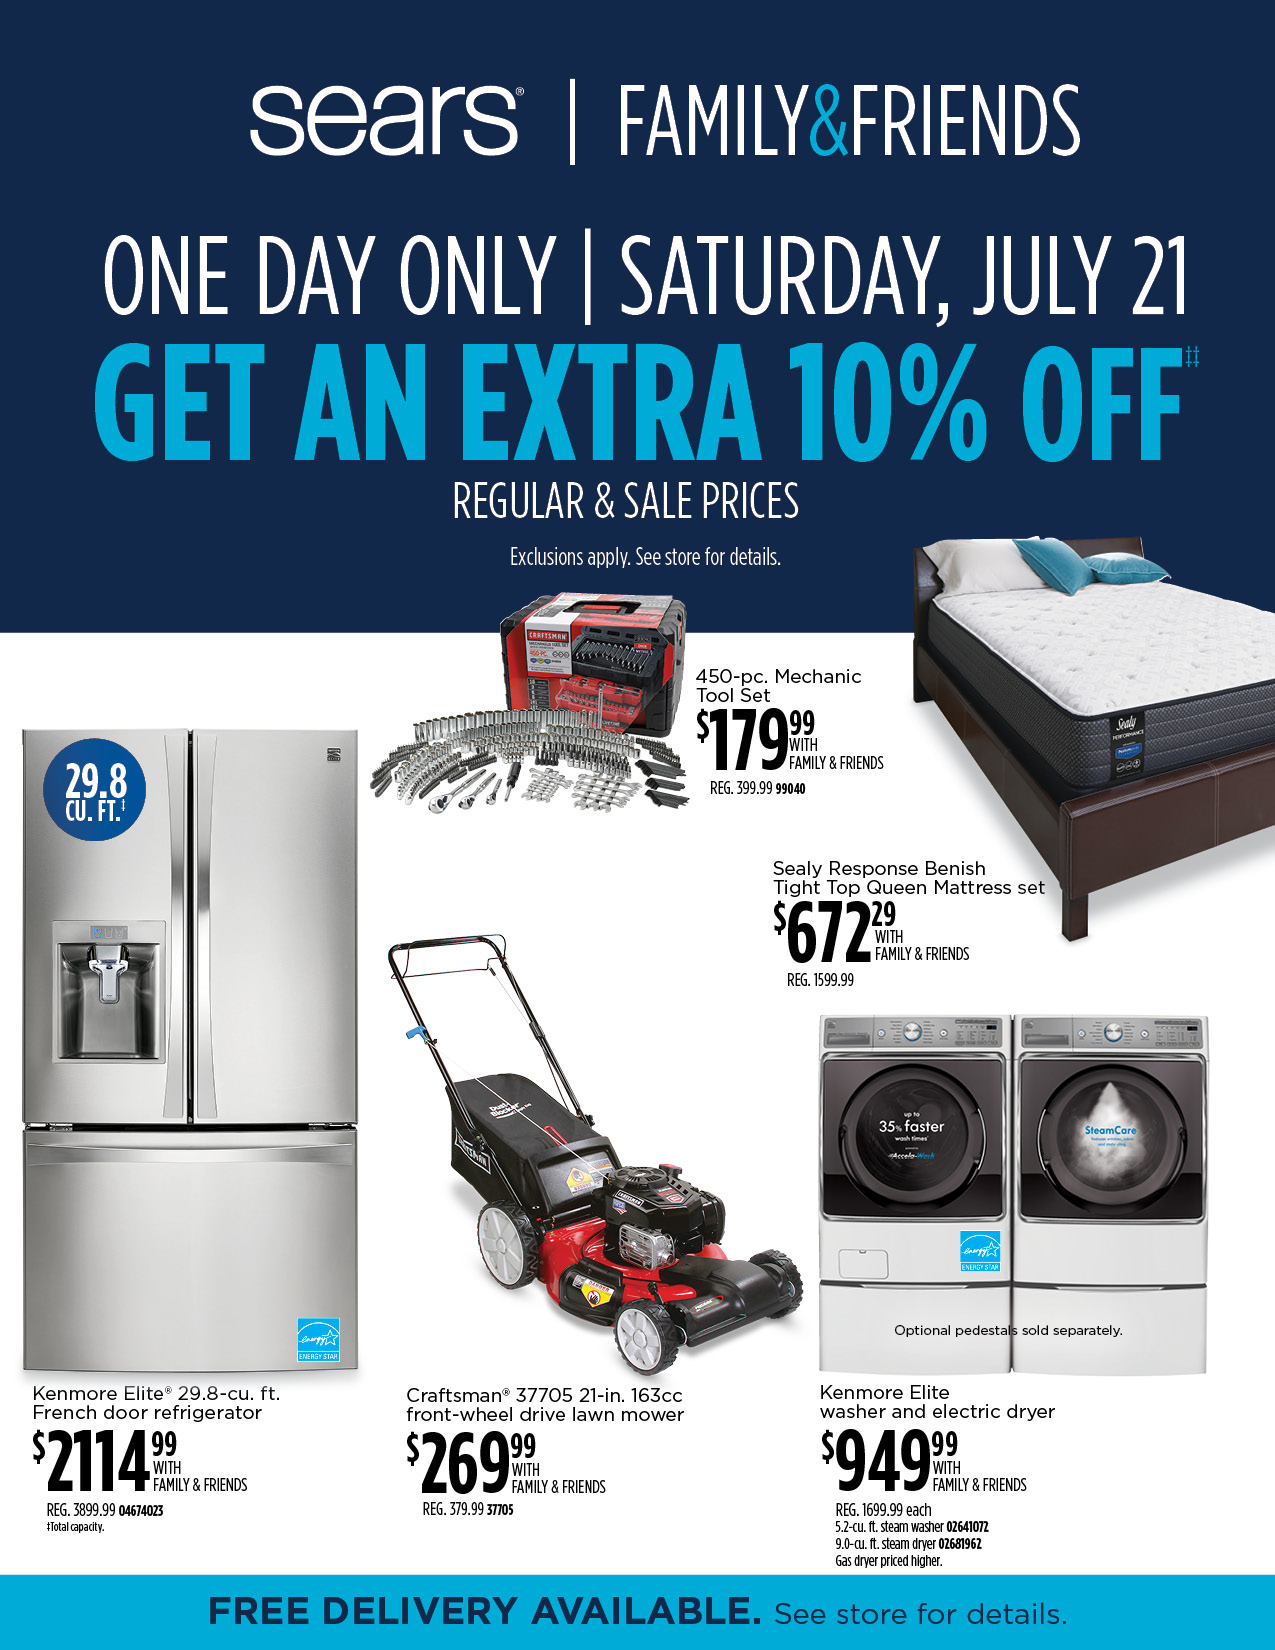 SEARS Family & Friends One Day Sale!